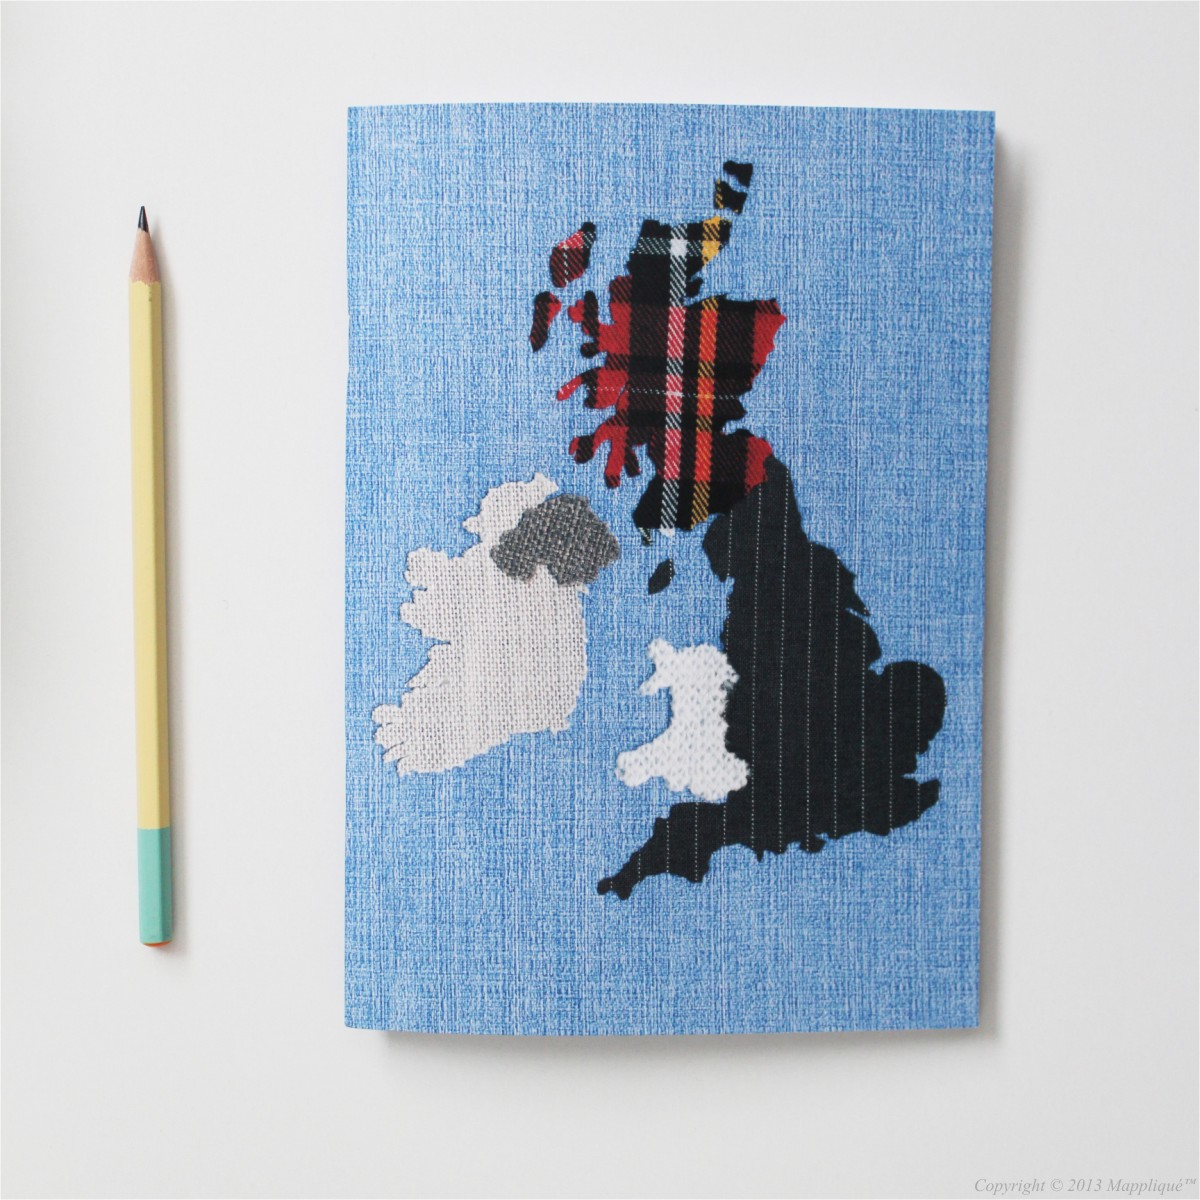 Mappliqué A5 British Isles Notebook